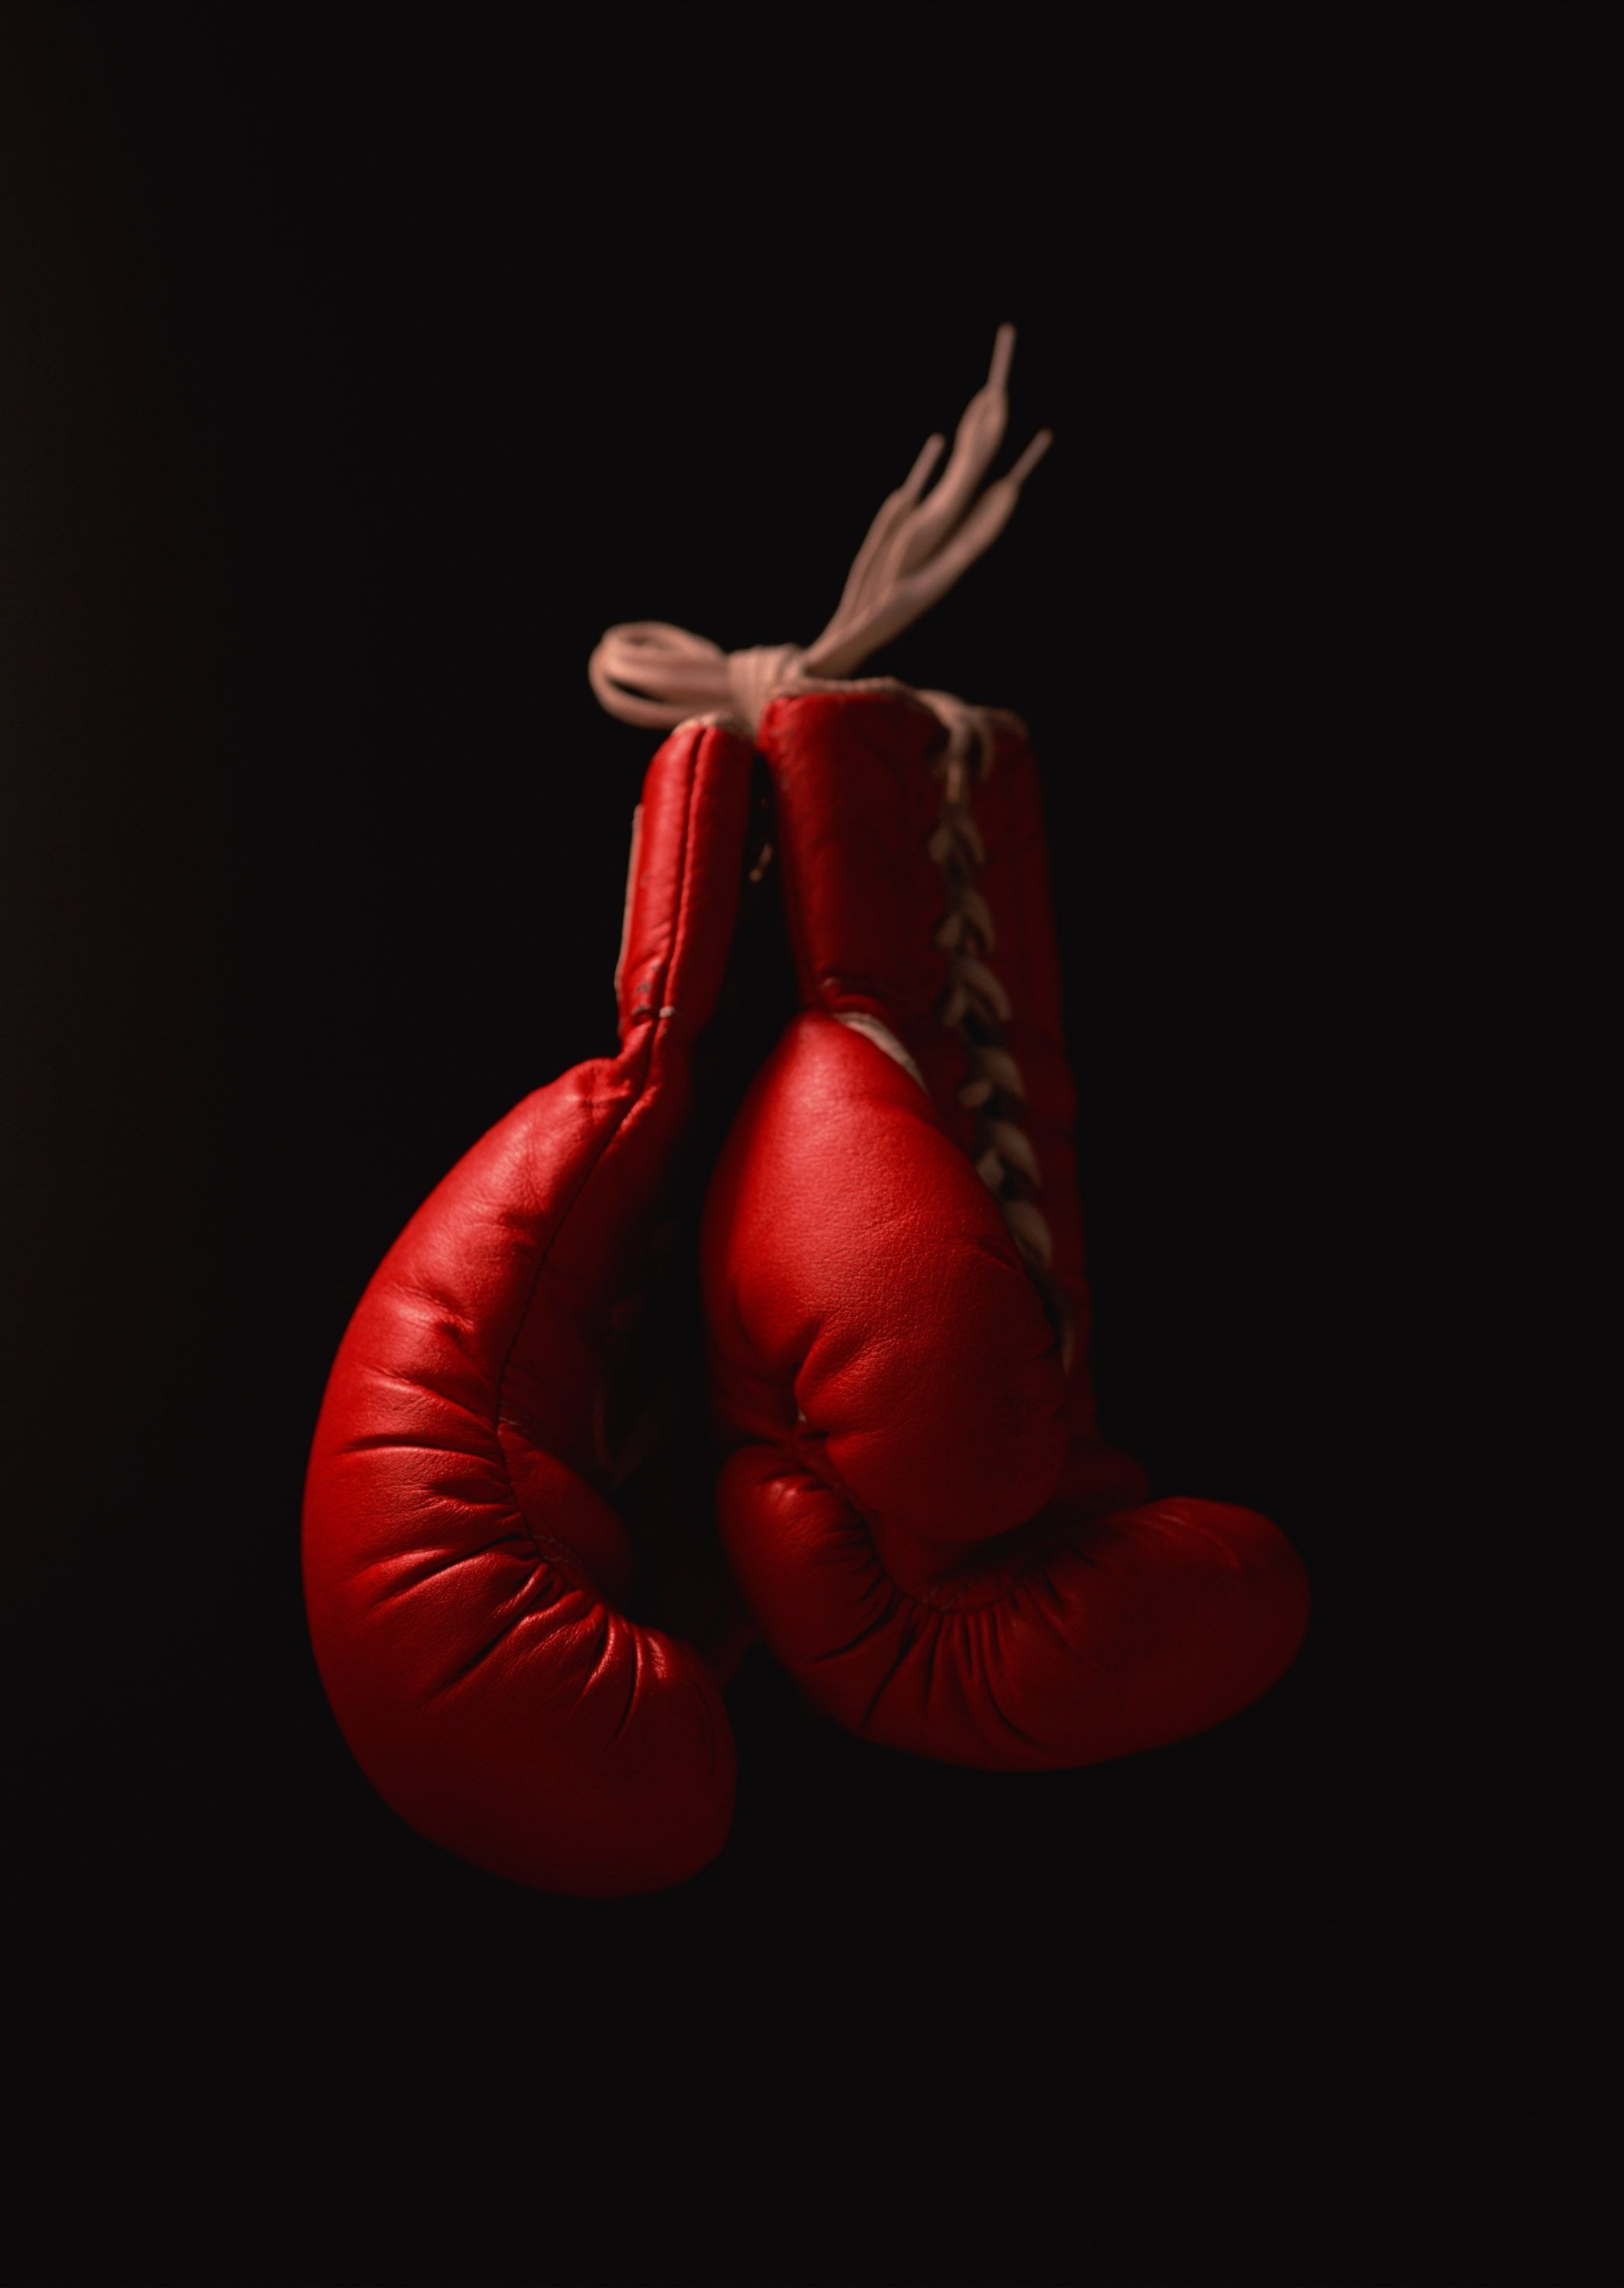 Res: 2094x2950, Boxing Gloves Wallpapers - Wallpaper Cave